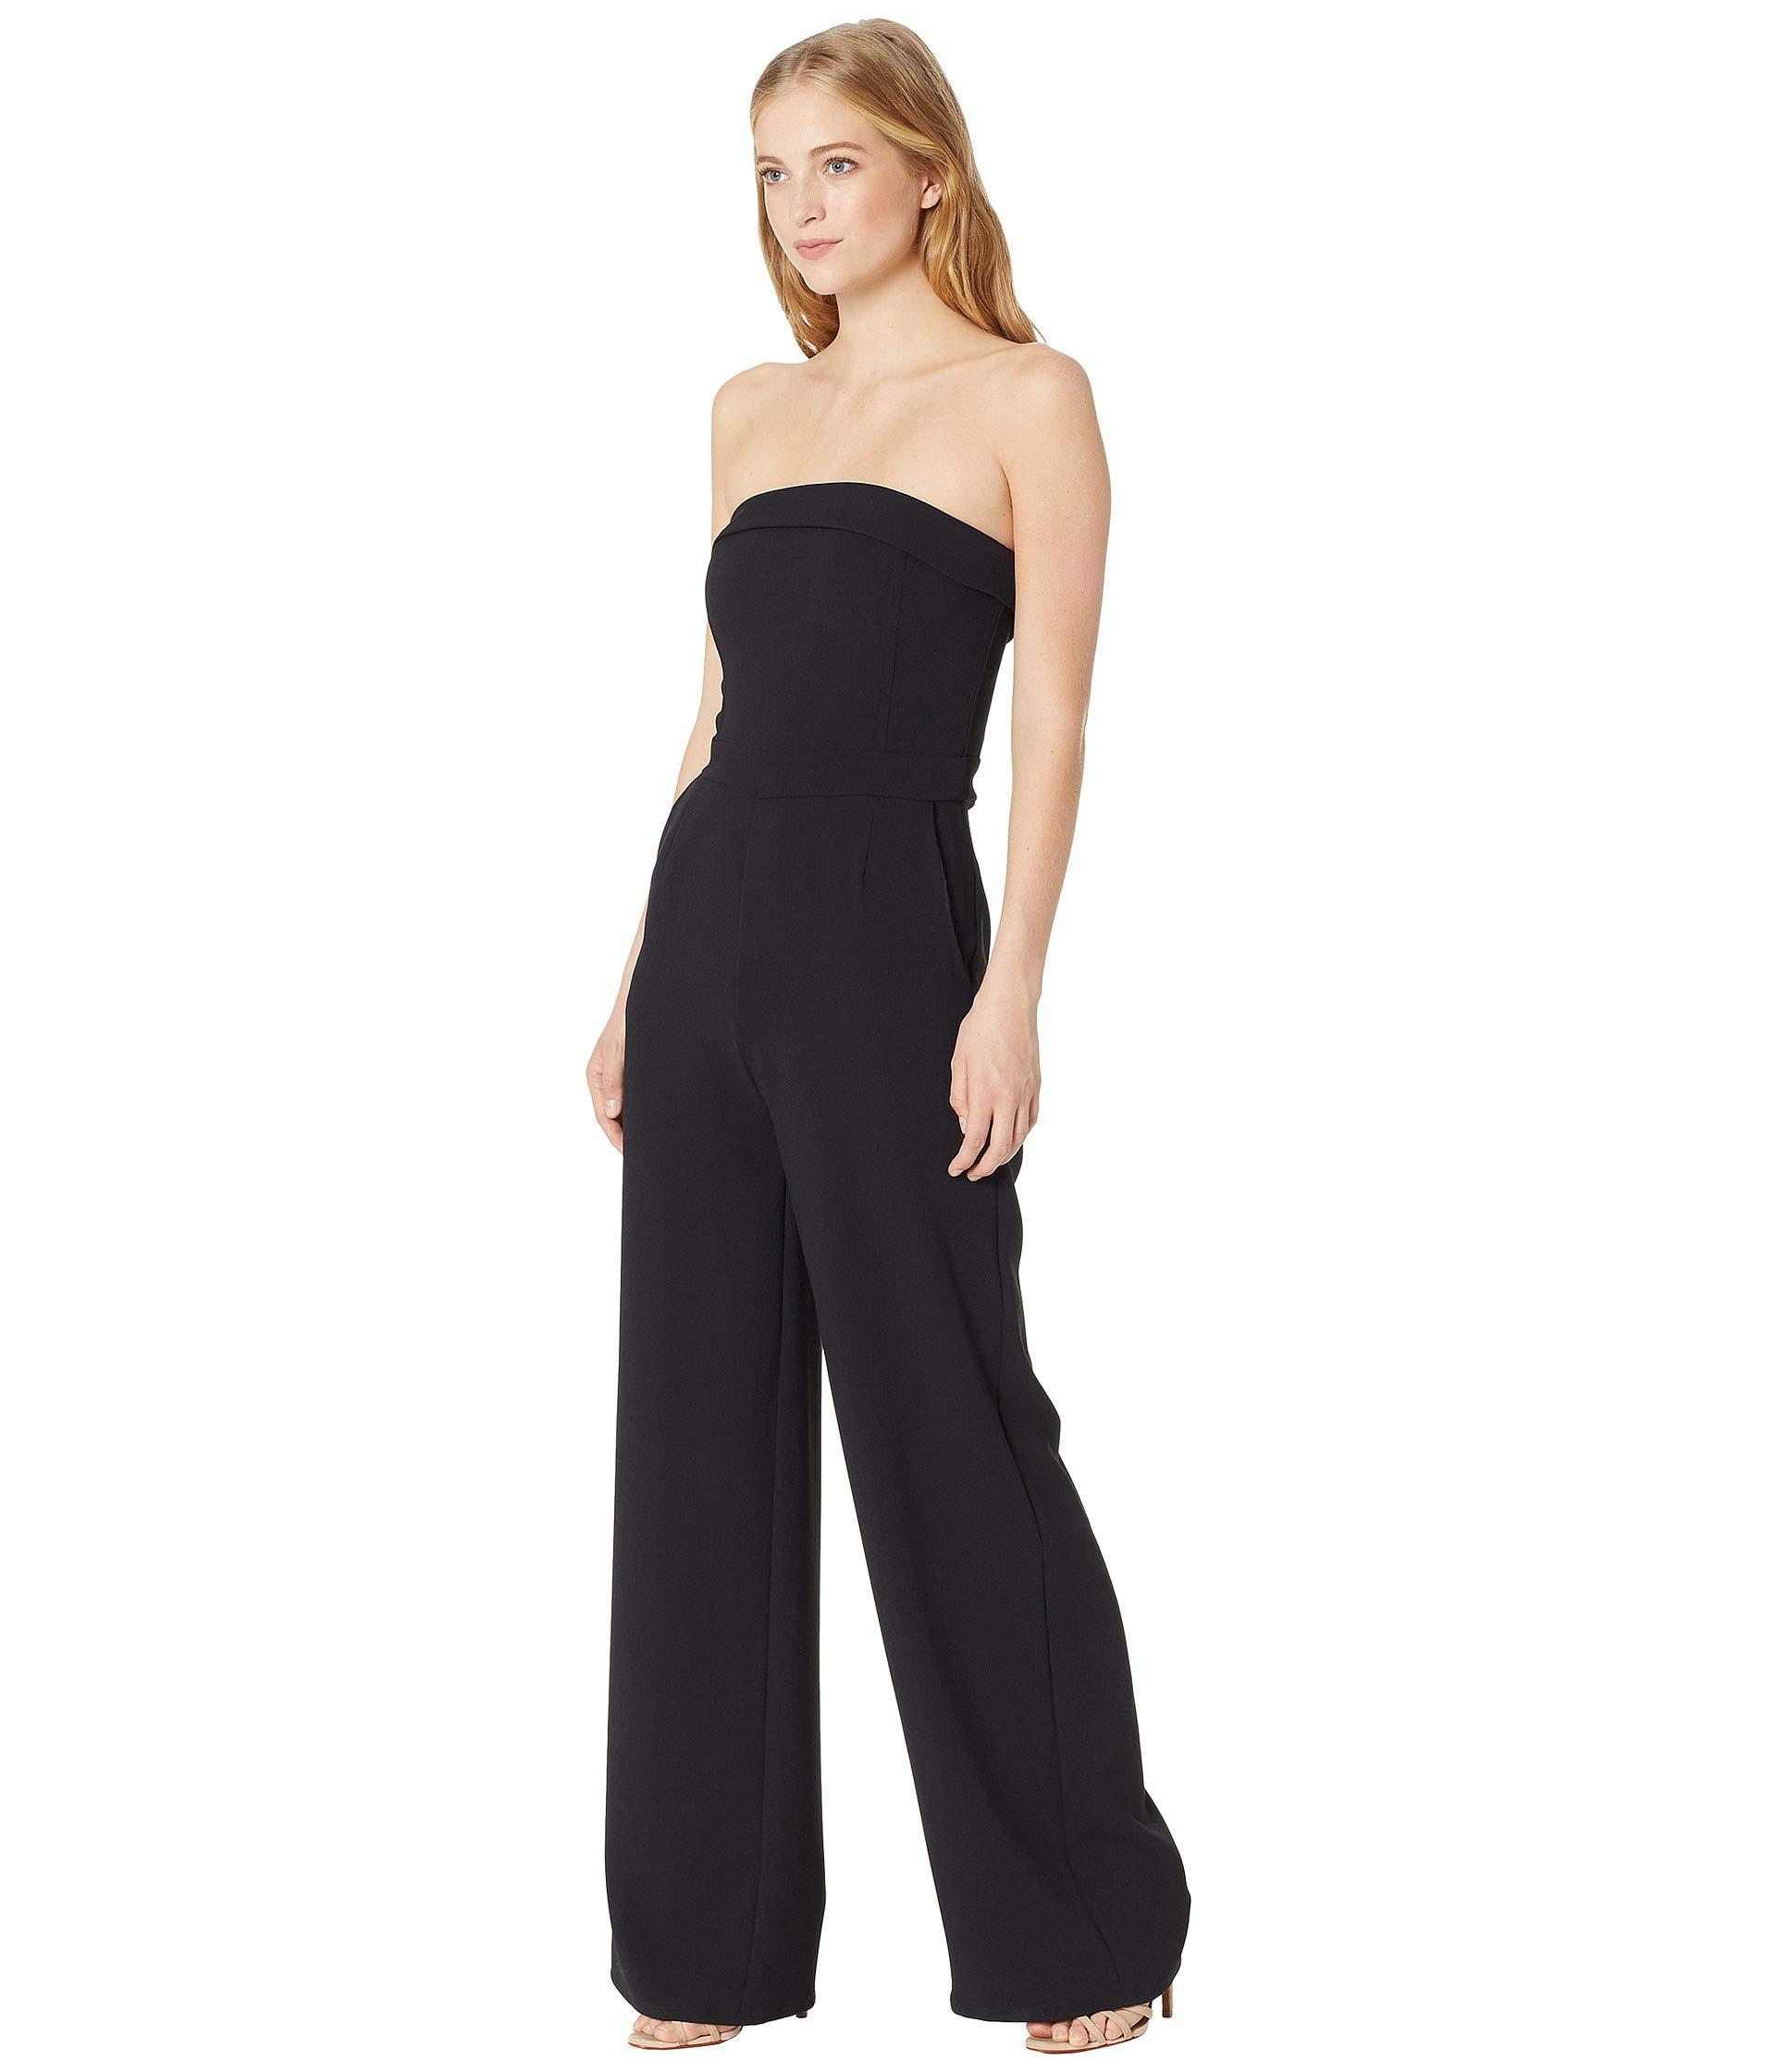 6575ac2d907f Lyst - Cupcakes And Cashmere Carissa Sleeveless Jumpsuit in Black - Save 62%